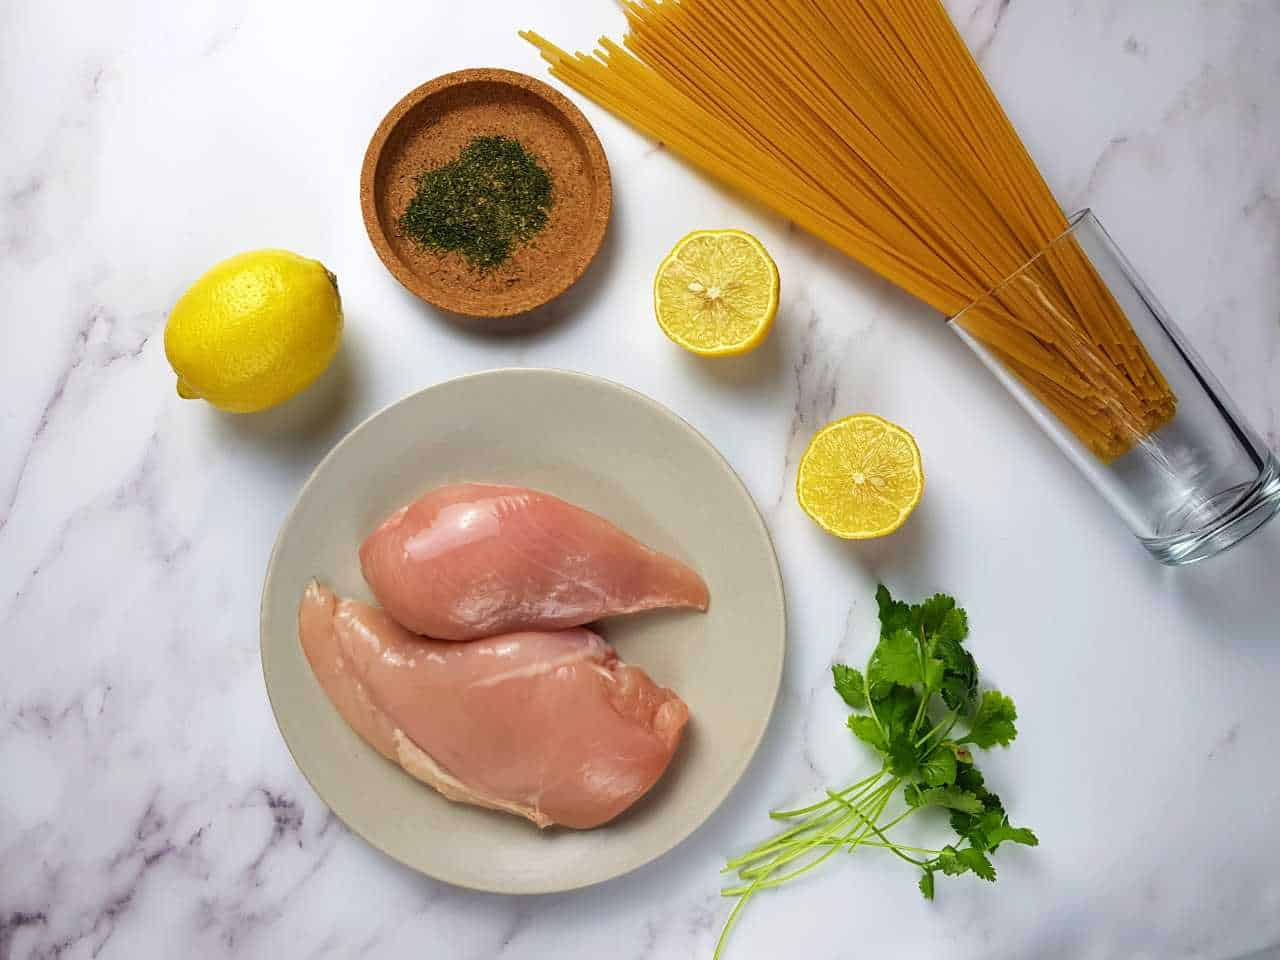 Chicken fillets, dill, lemon, coriander and pasta laid down on a marble table.